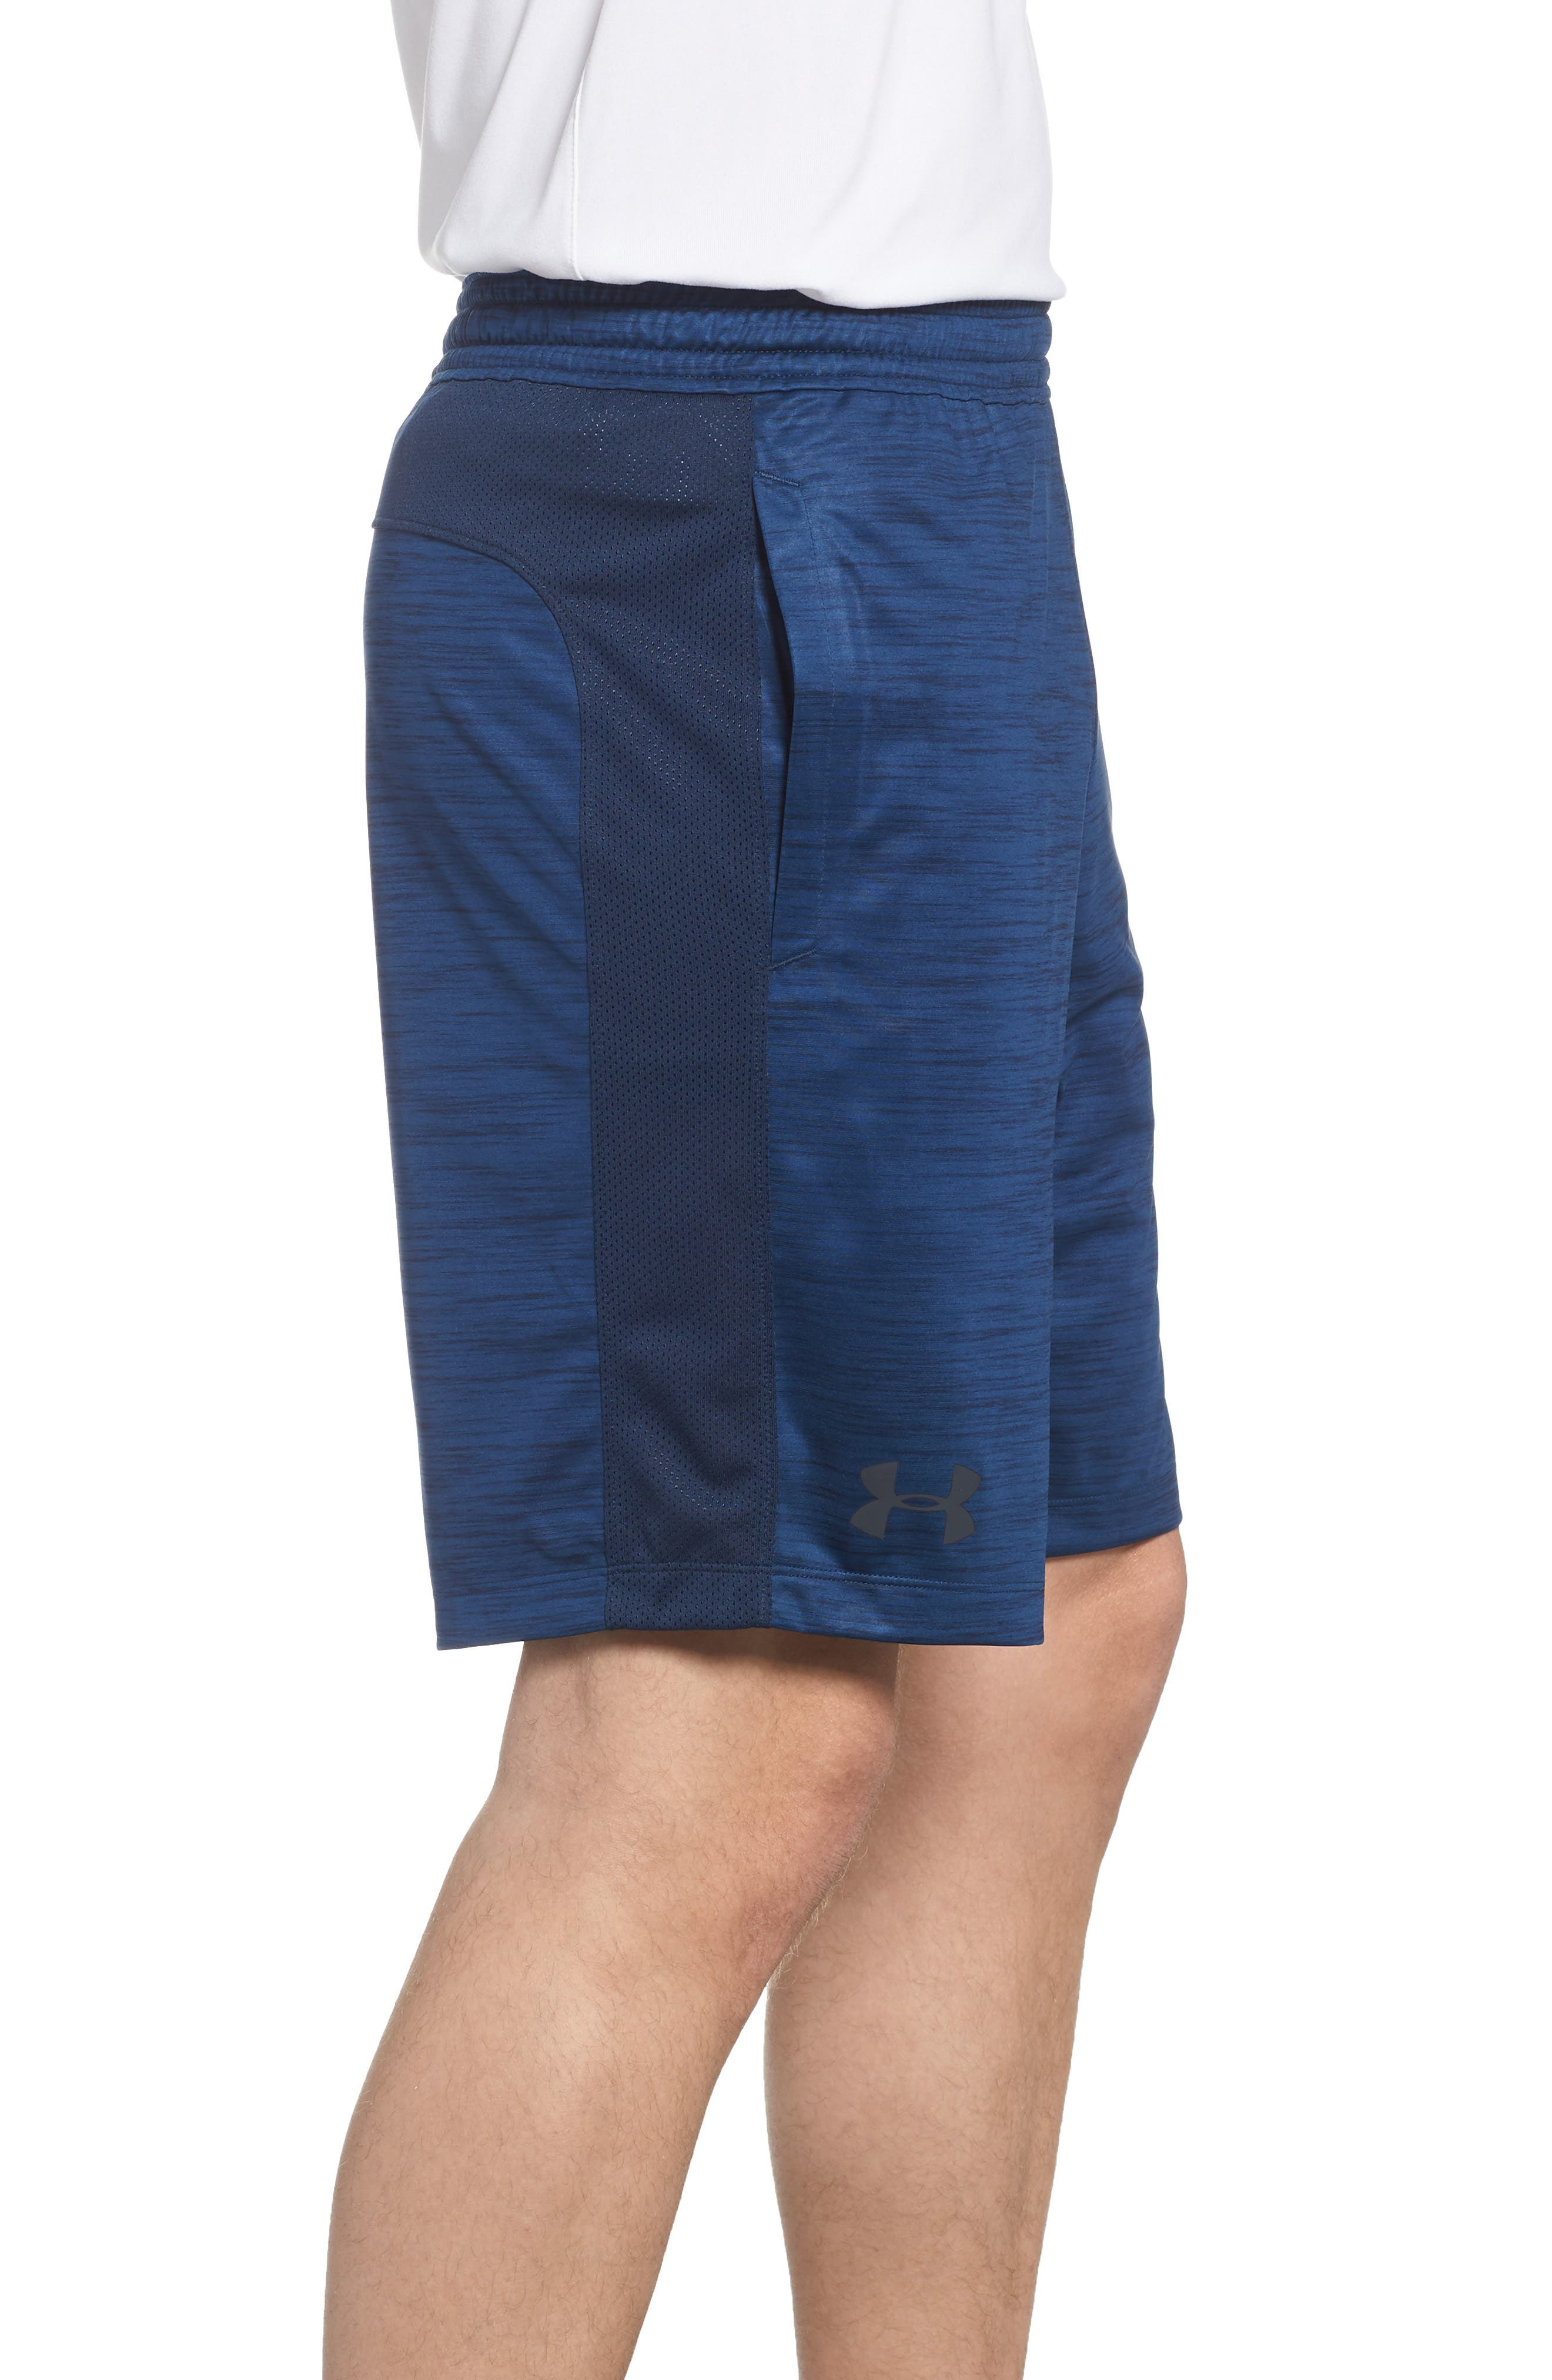 MK1 Twist Shorts,                             Alternate thumbnail 3, color,                             Academy/ Stealth Greh